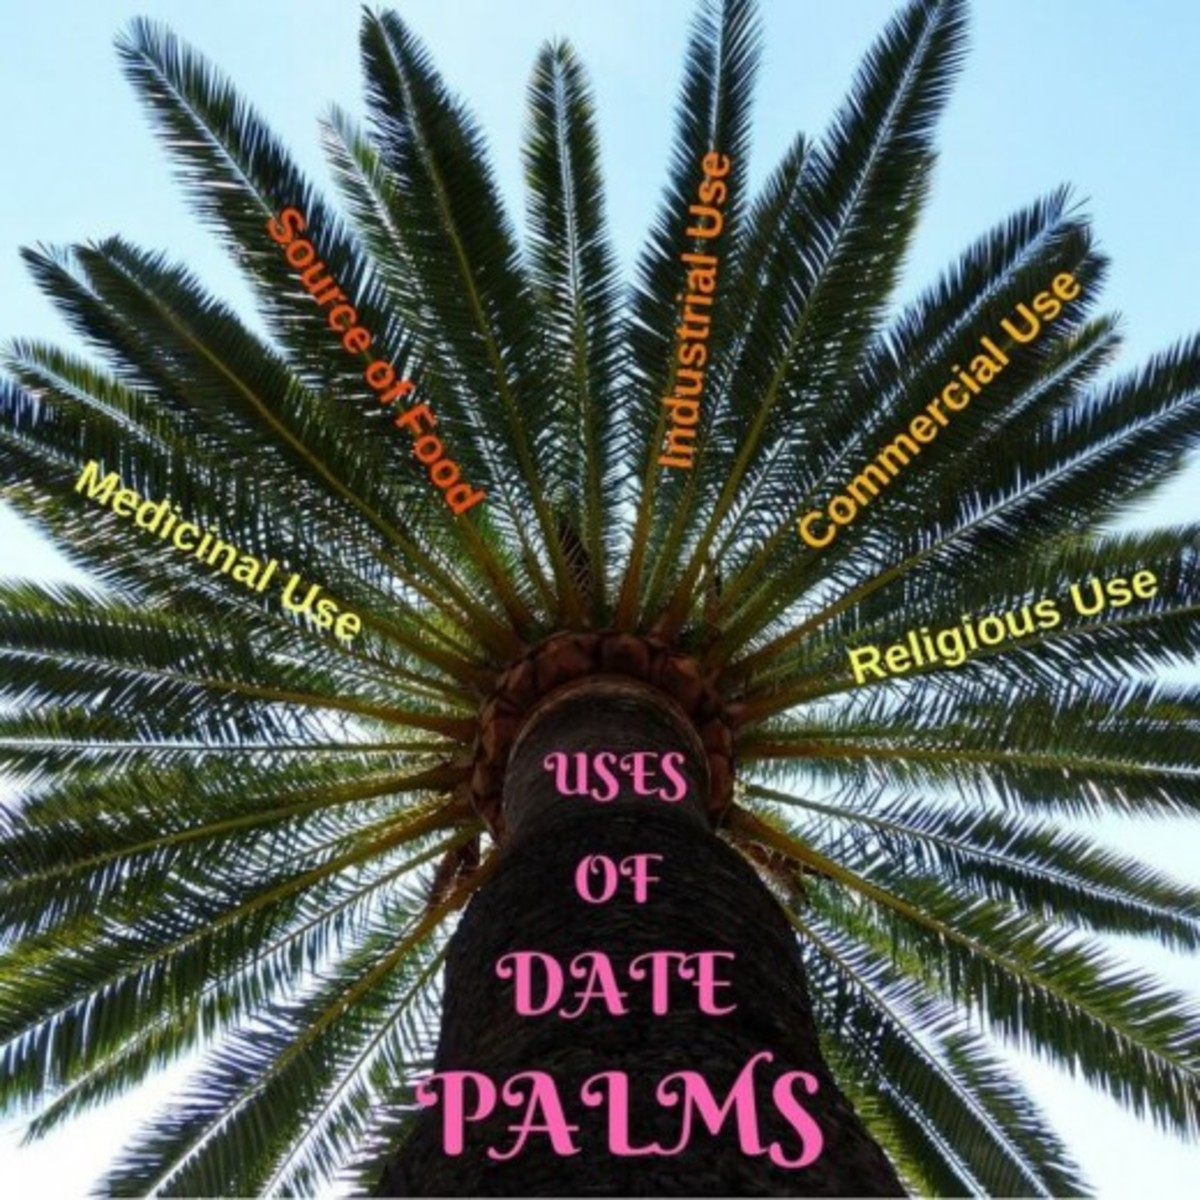 Uses and Benefits of Date Palm That Will Surprise You